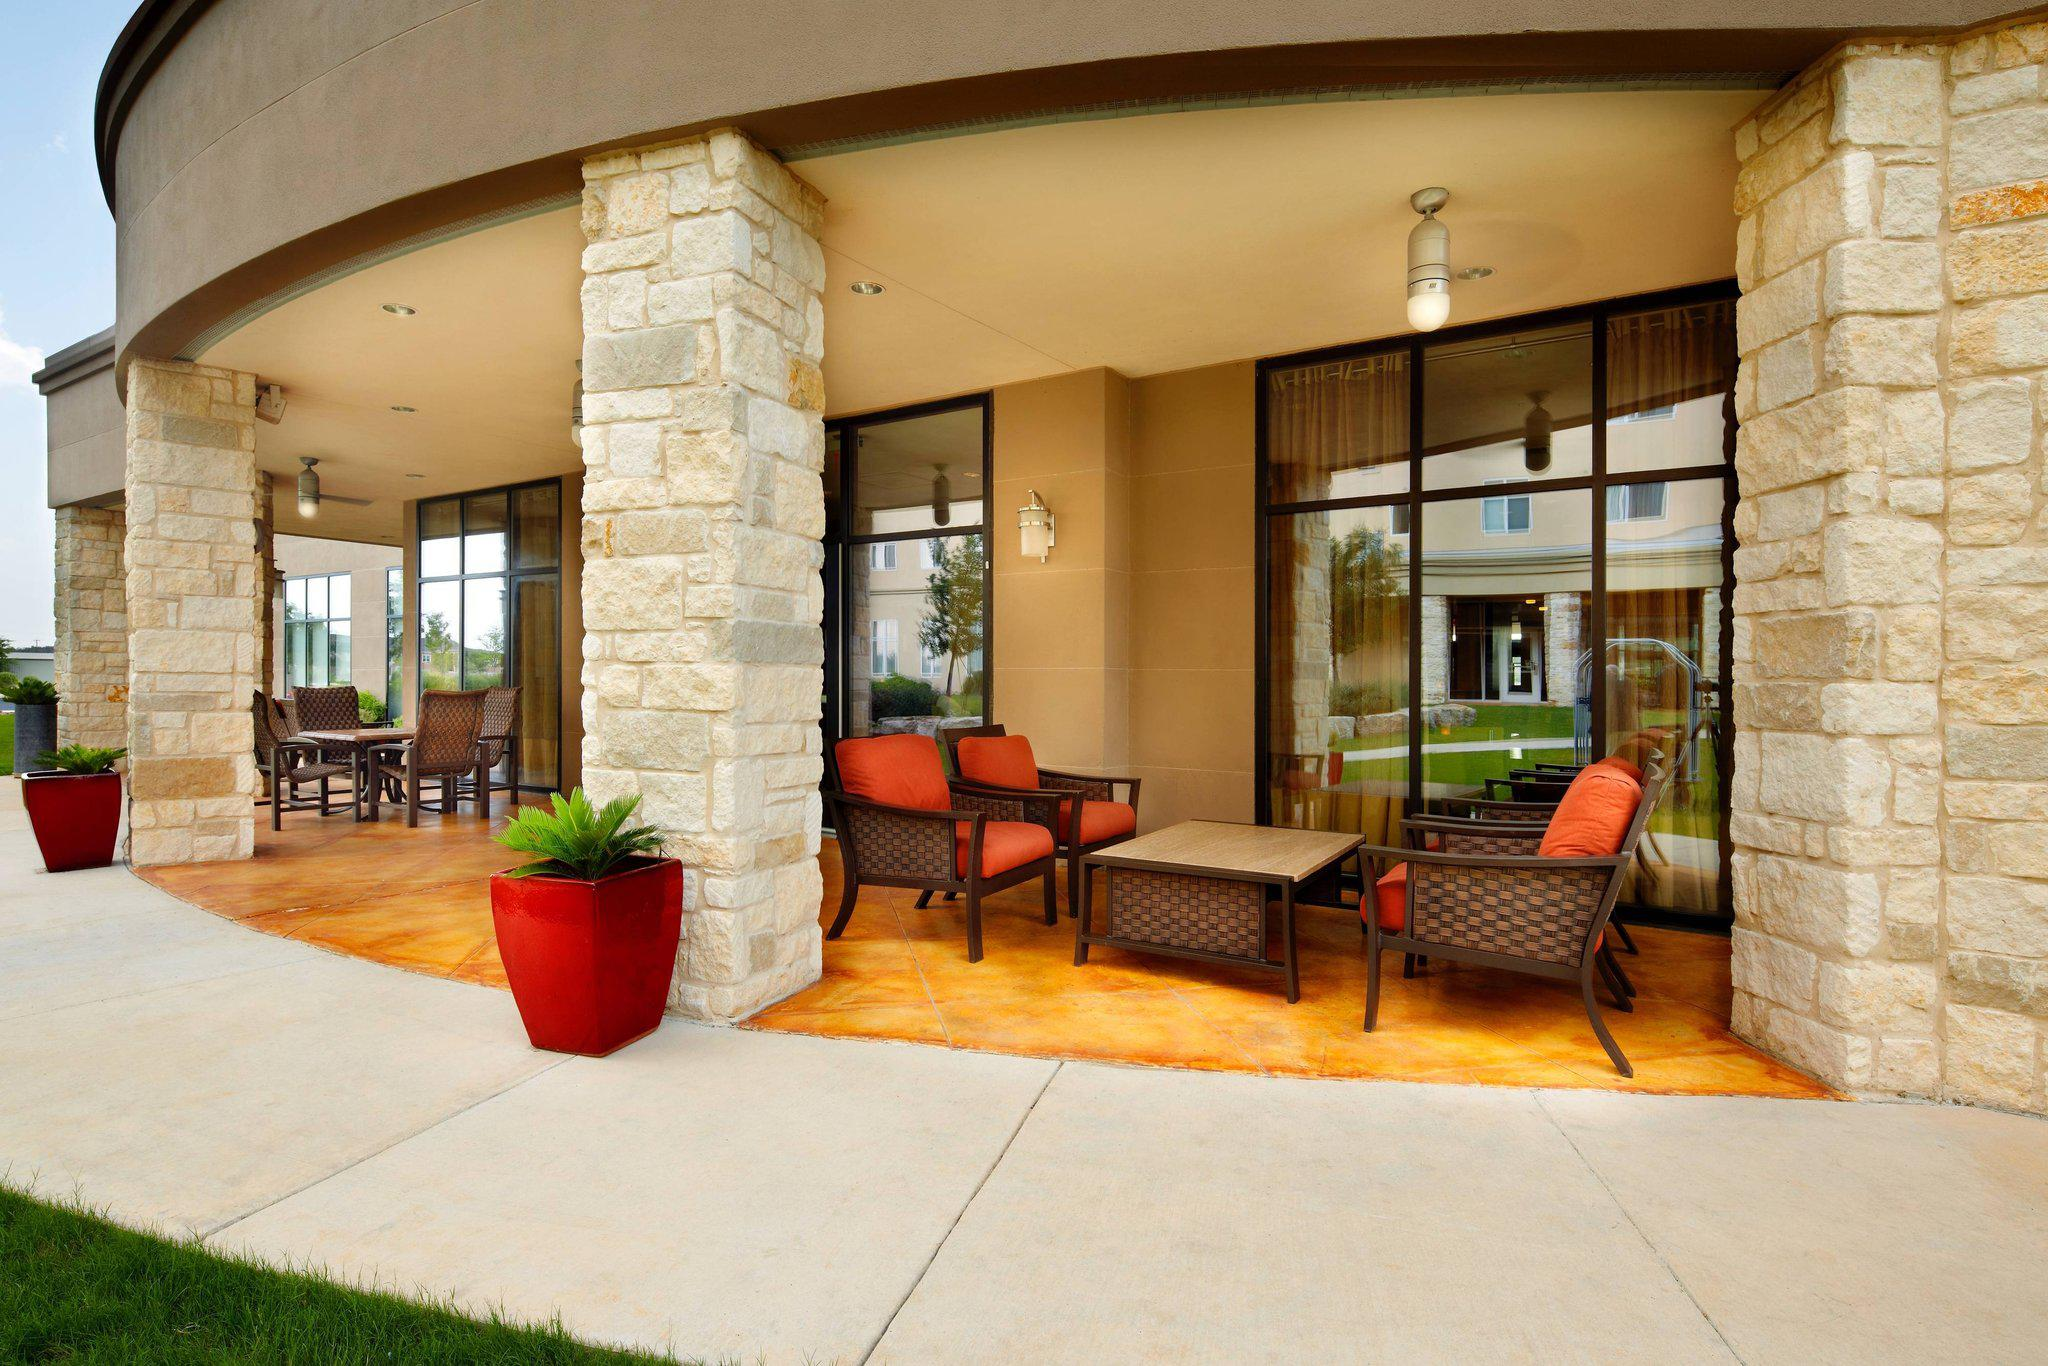 Courtyard By Marriott San Antonio Six Flags 174 At The Rim